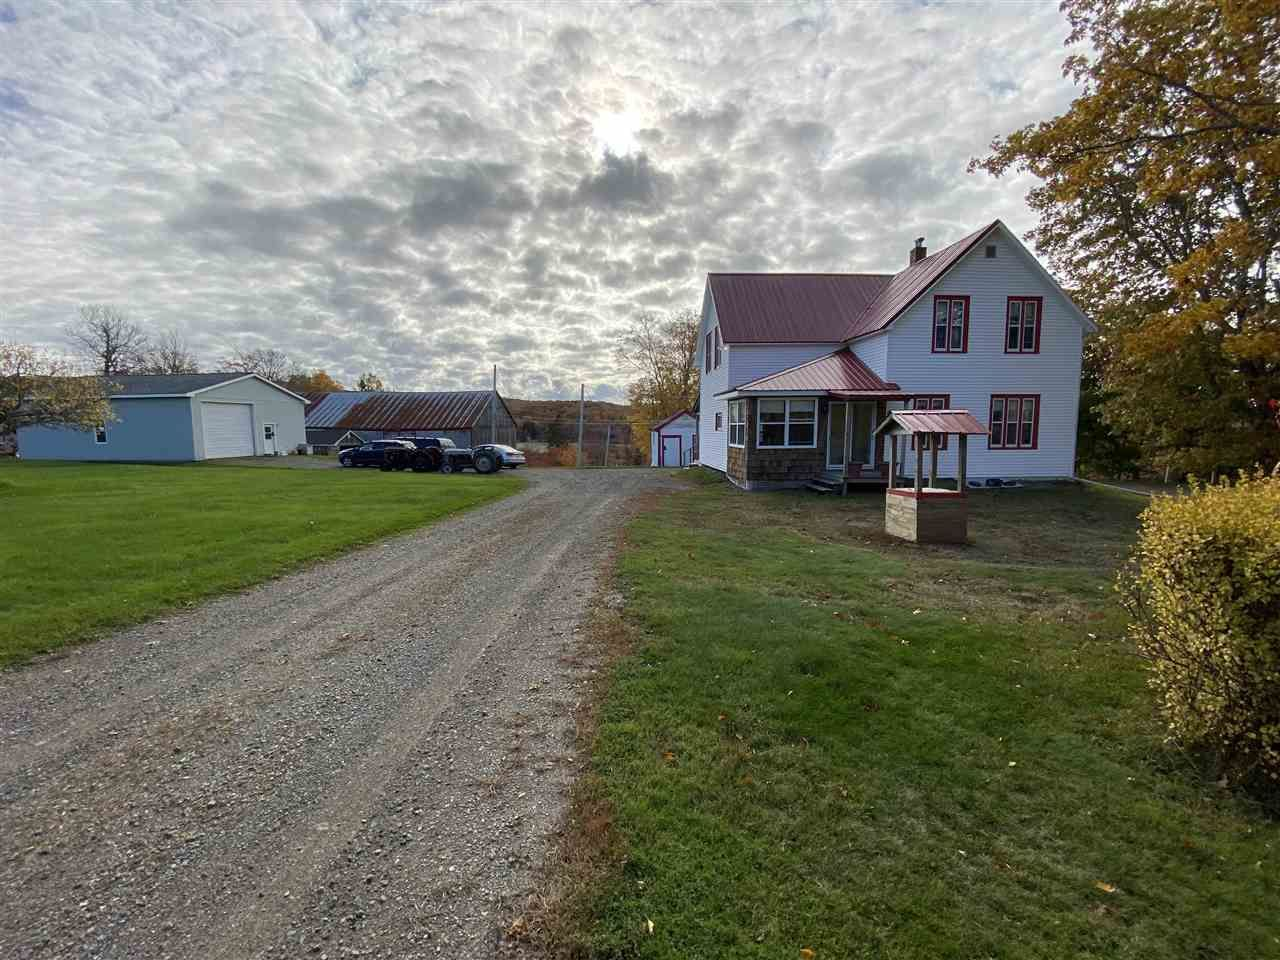 Main Photo: 6384 Highway 348 Highway in Glenelg: 303-Guysborough County Residential for sale (Highland Region)  : MLS®# 202022055